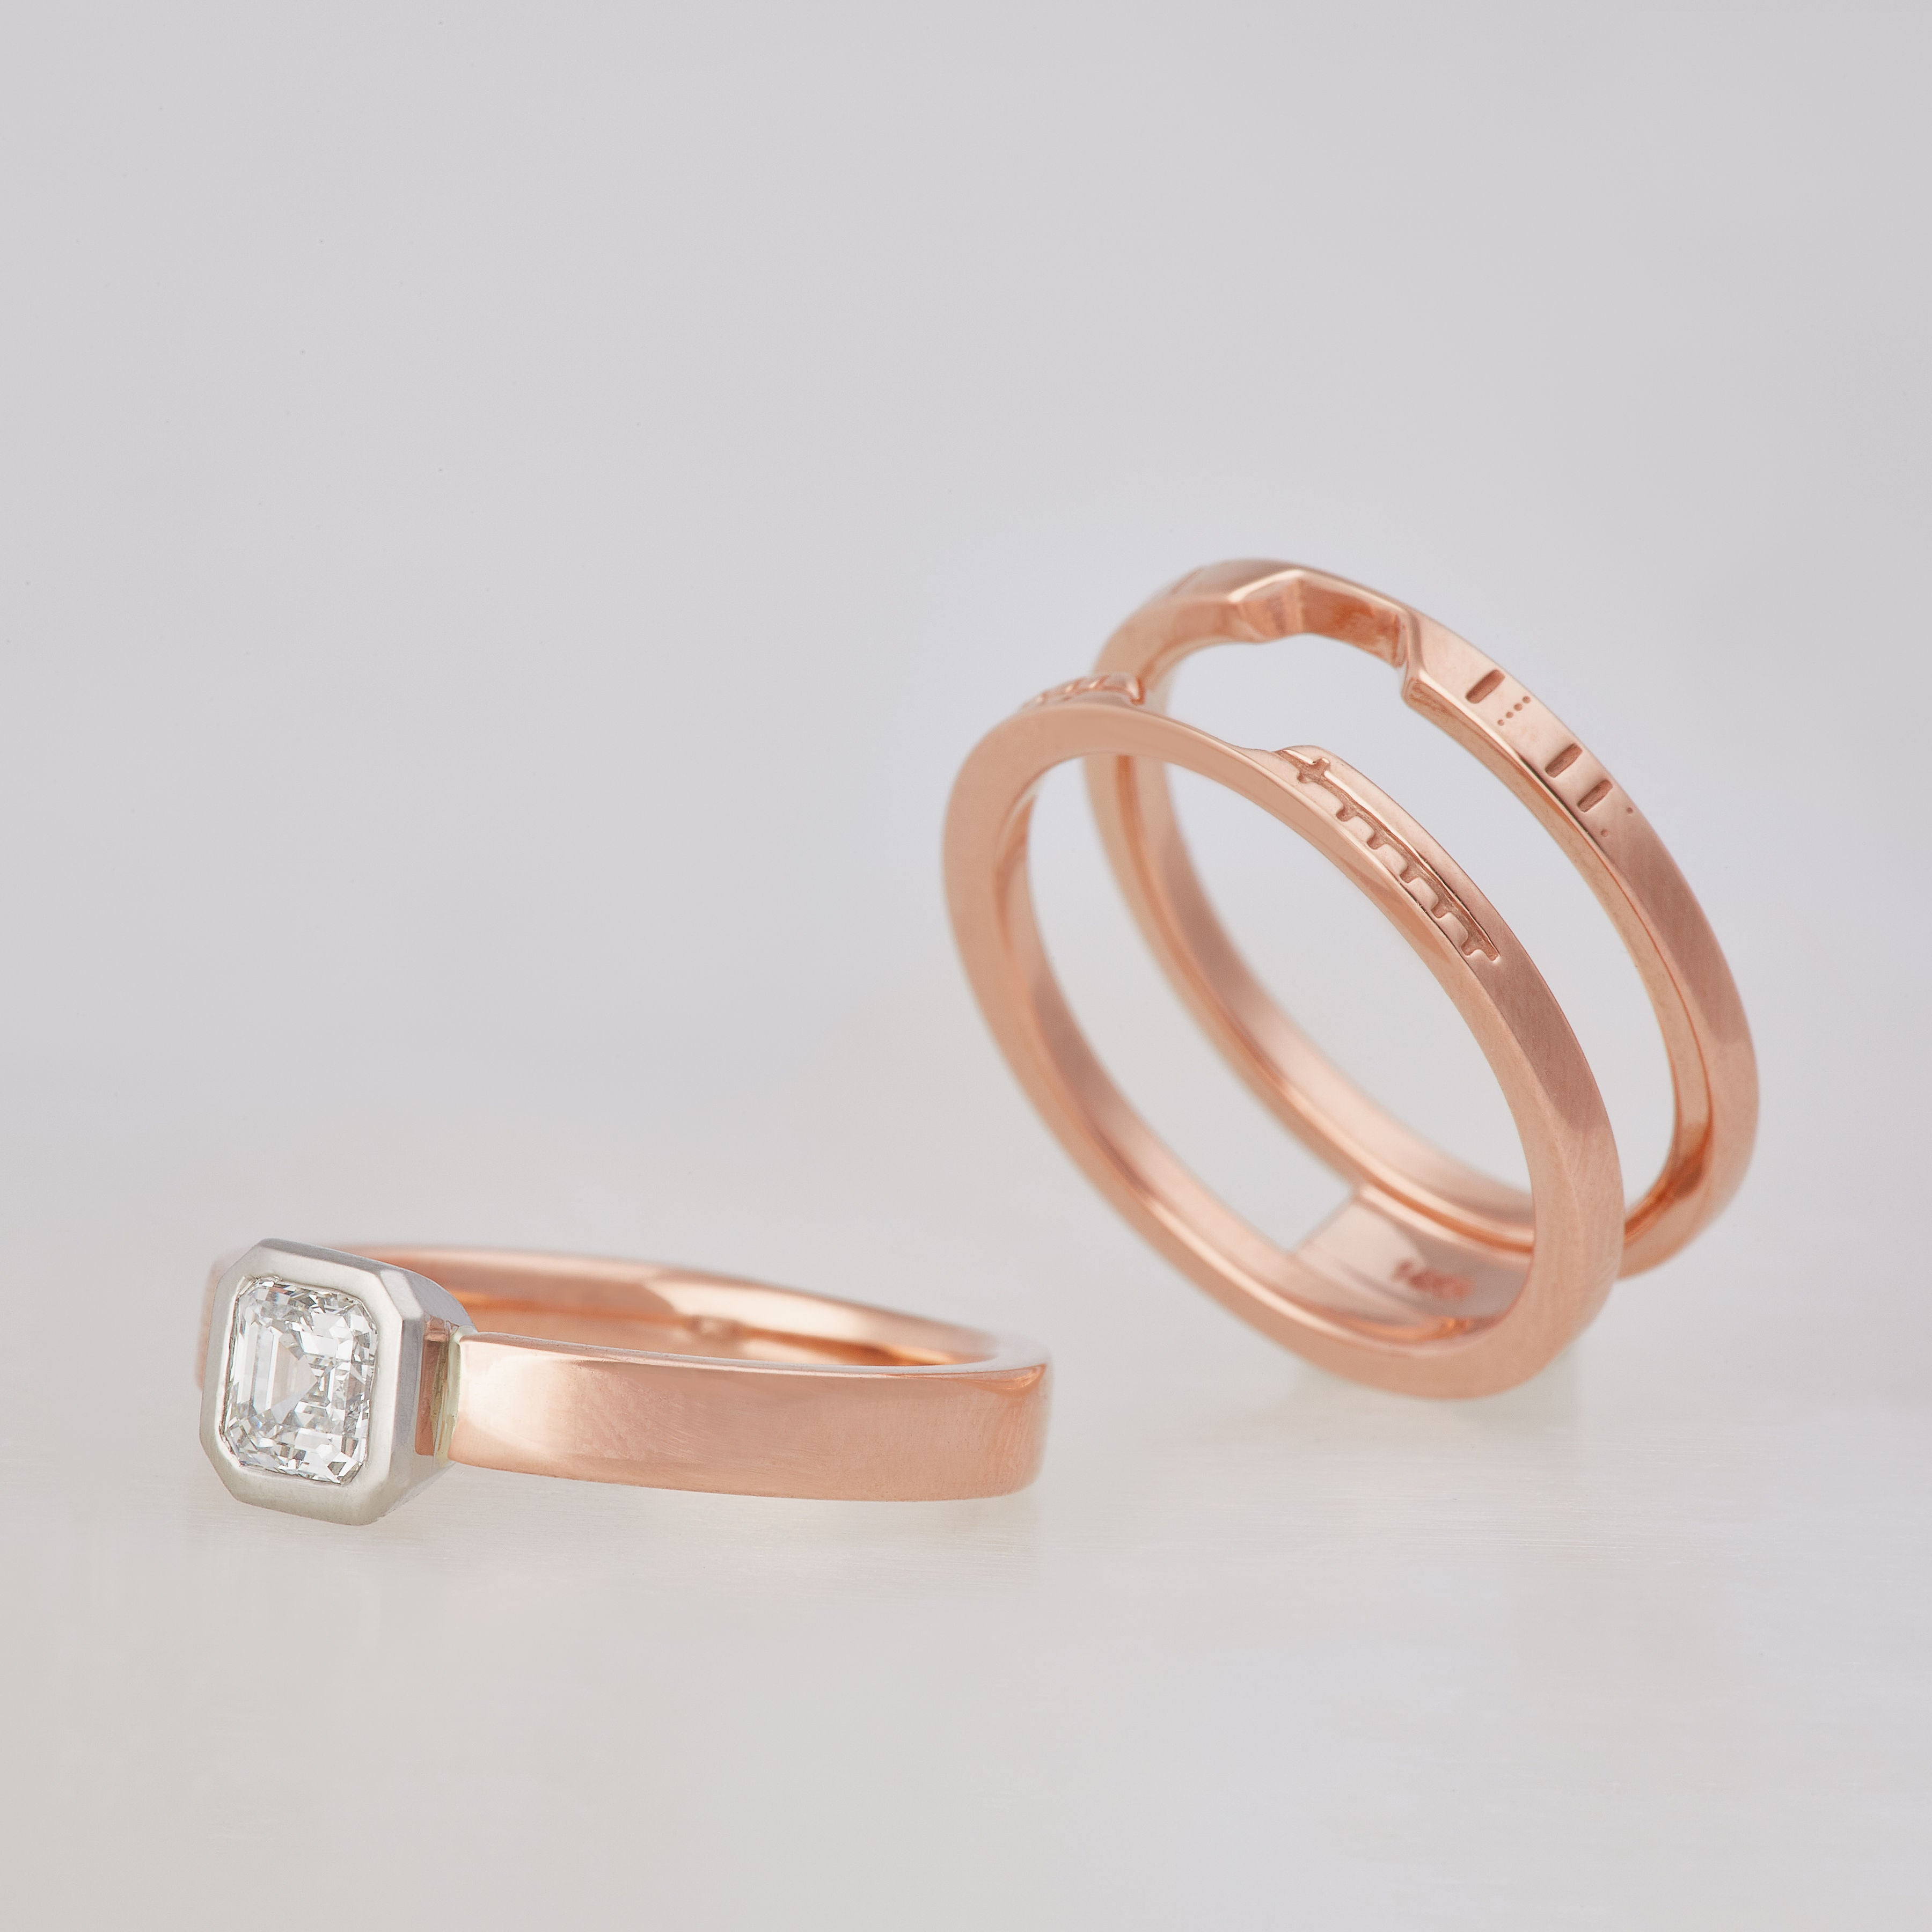 [Pic of Wedding Bands]